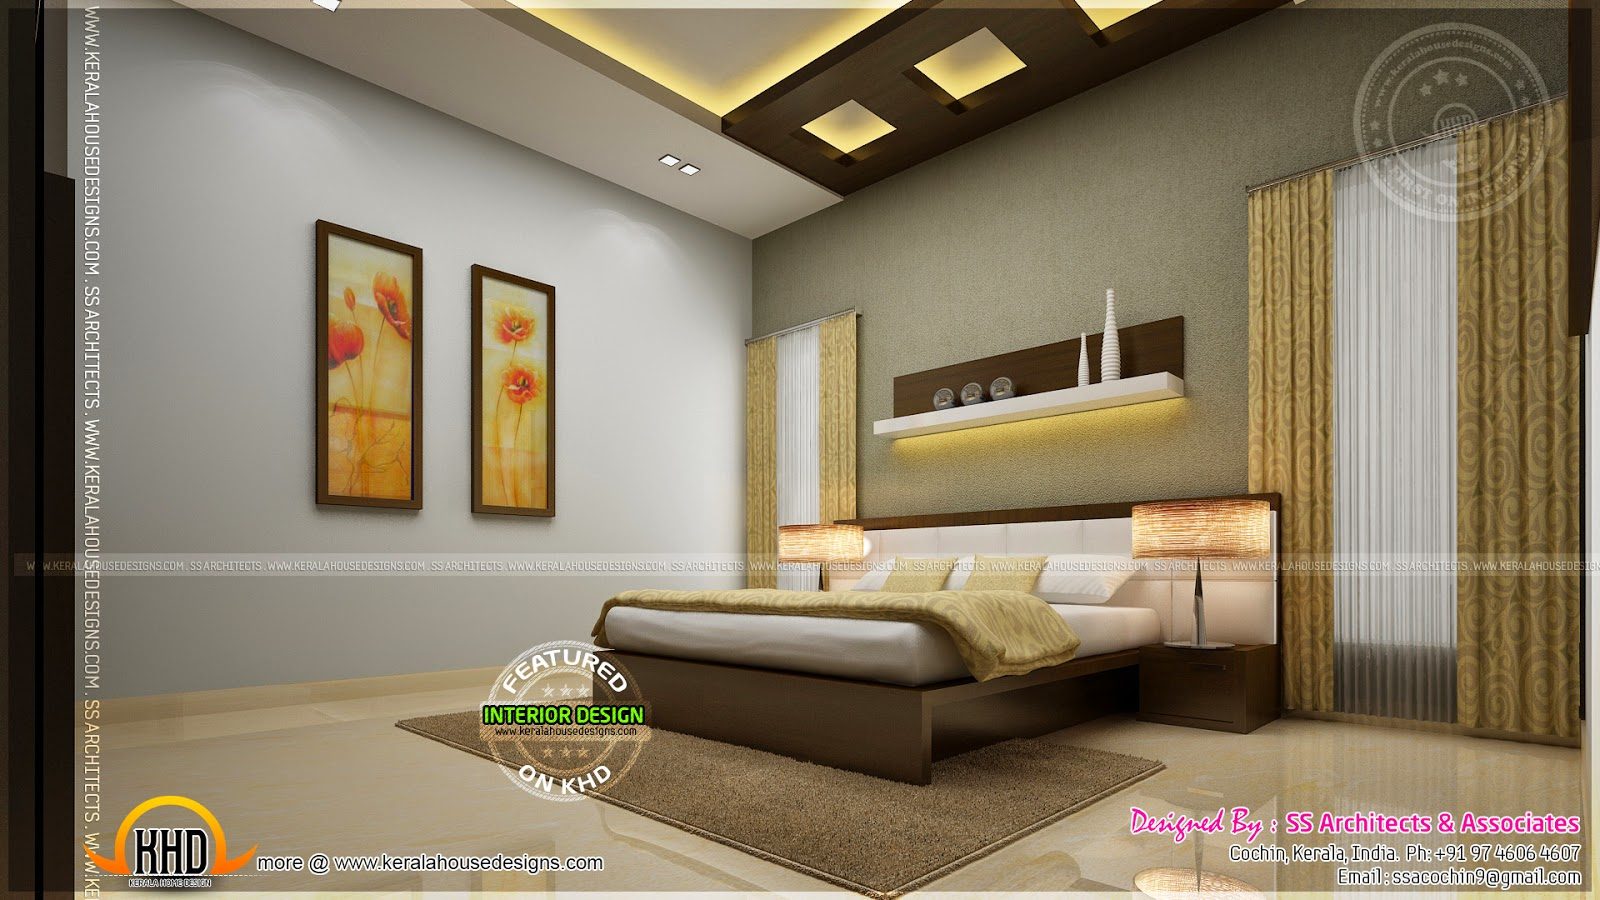 Awesome master bedroom interior kerala home design and floor plans - Master bedroom design plans ideas ...